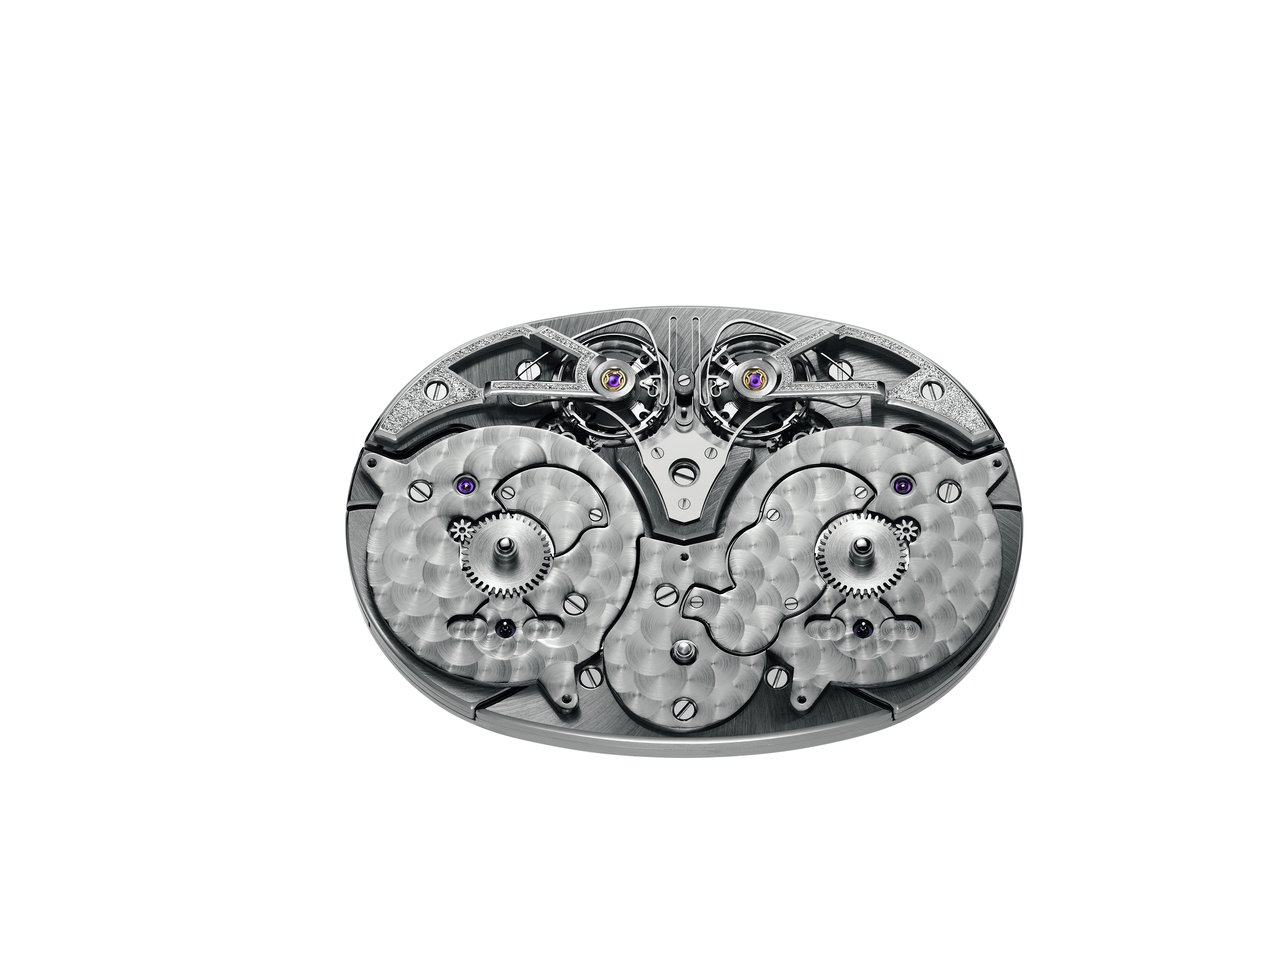 Armin Strom Dual Time Resonance Sapphire movement